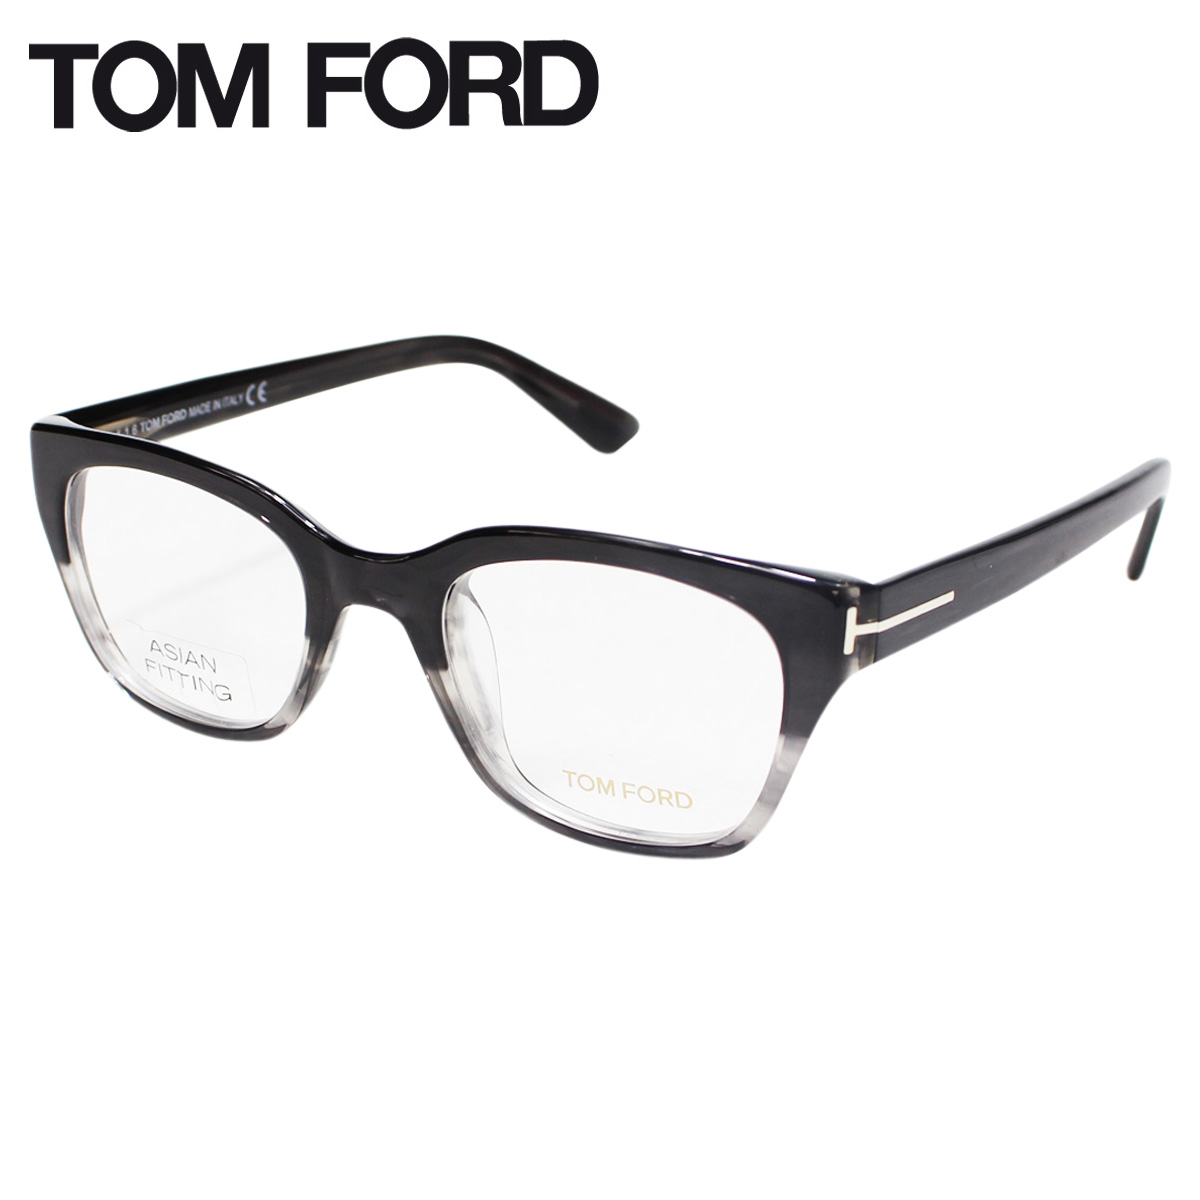 609b46728b Sugar Online Shop  Product made in Tom Ford glasses 4240 TOM FORD ...